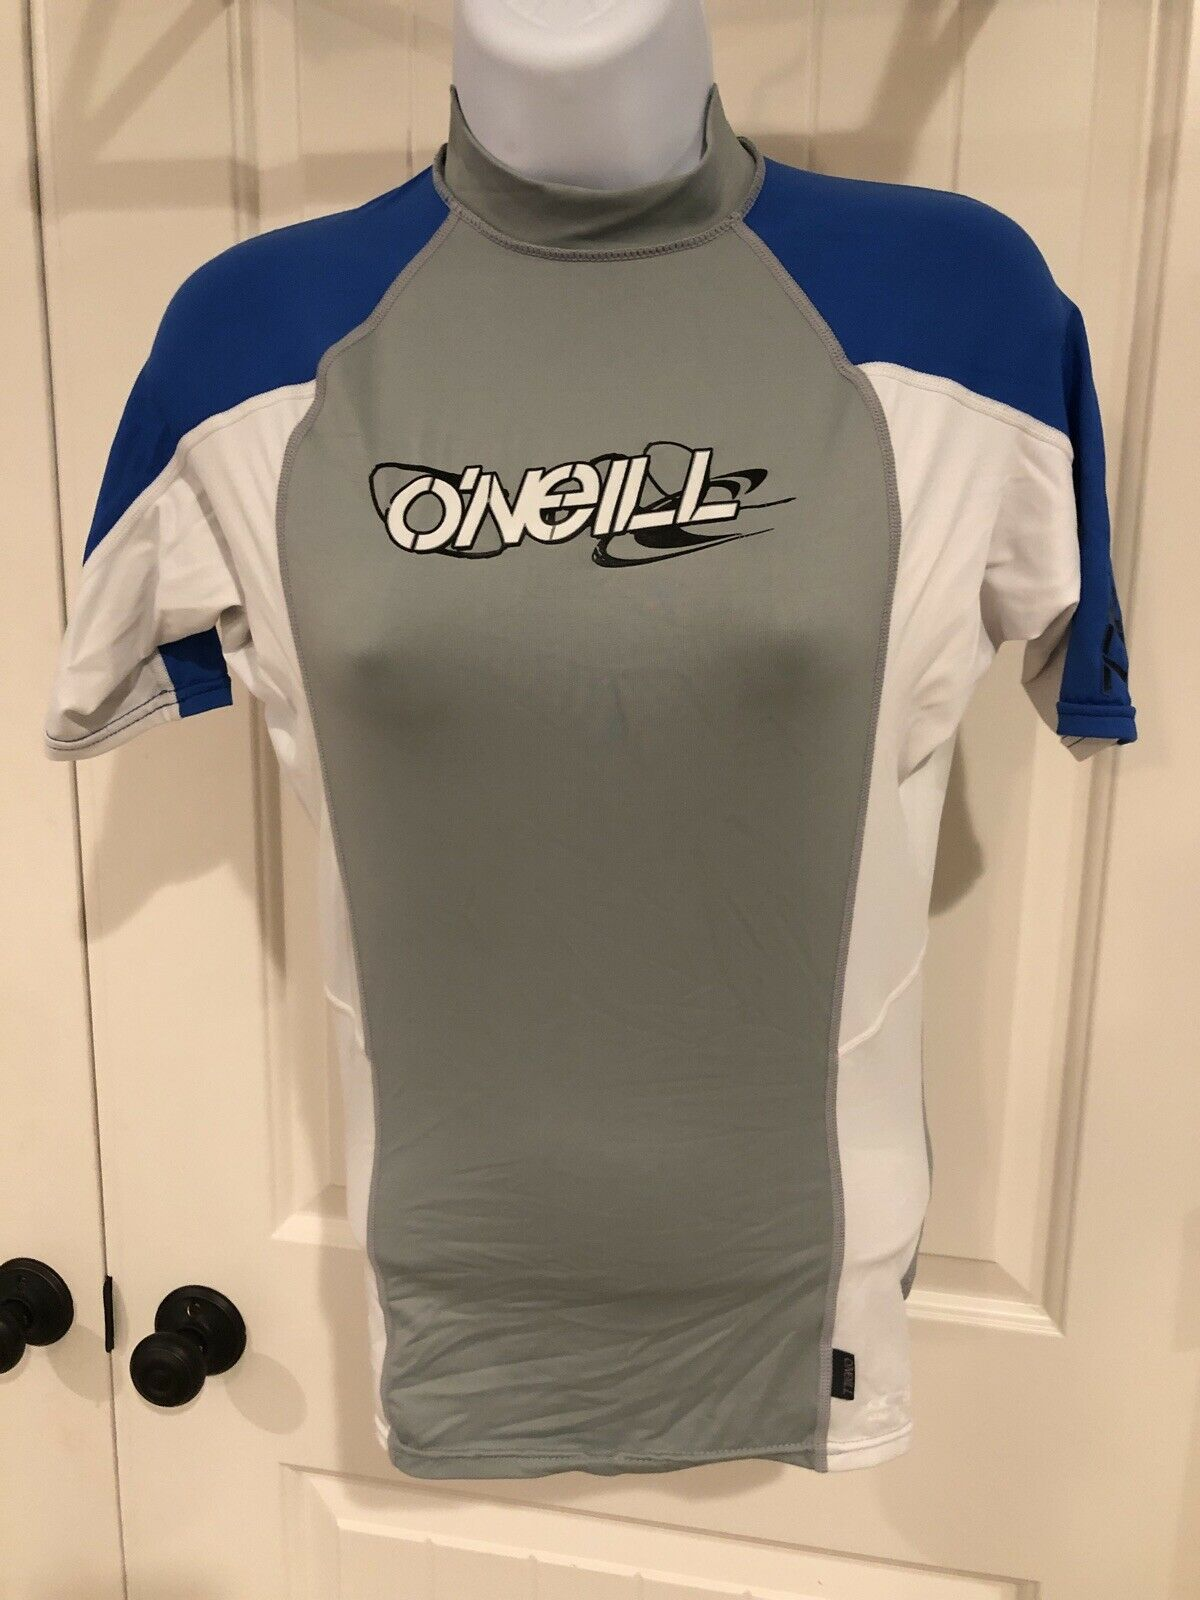 O'Neill, Womens Small Short Sleeved Mock Neck Surfing Shirt Gray White And Blue